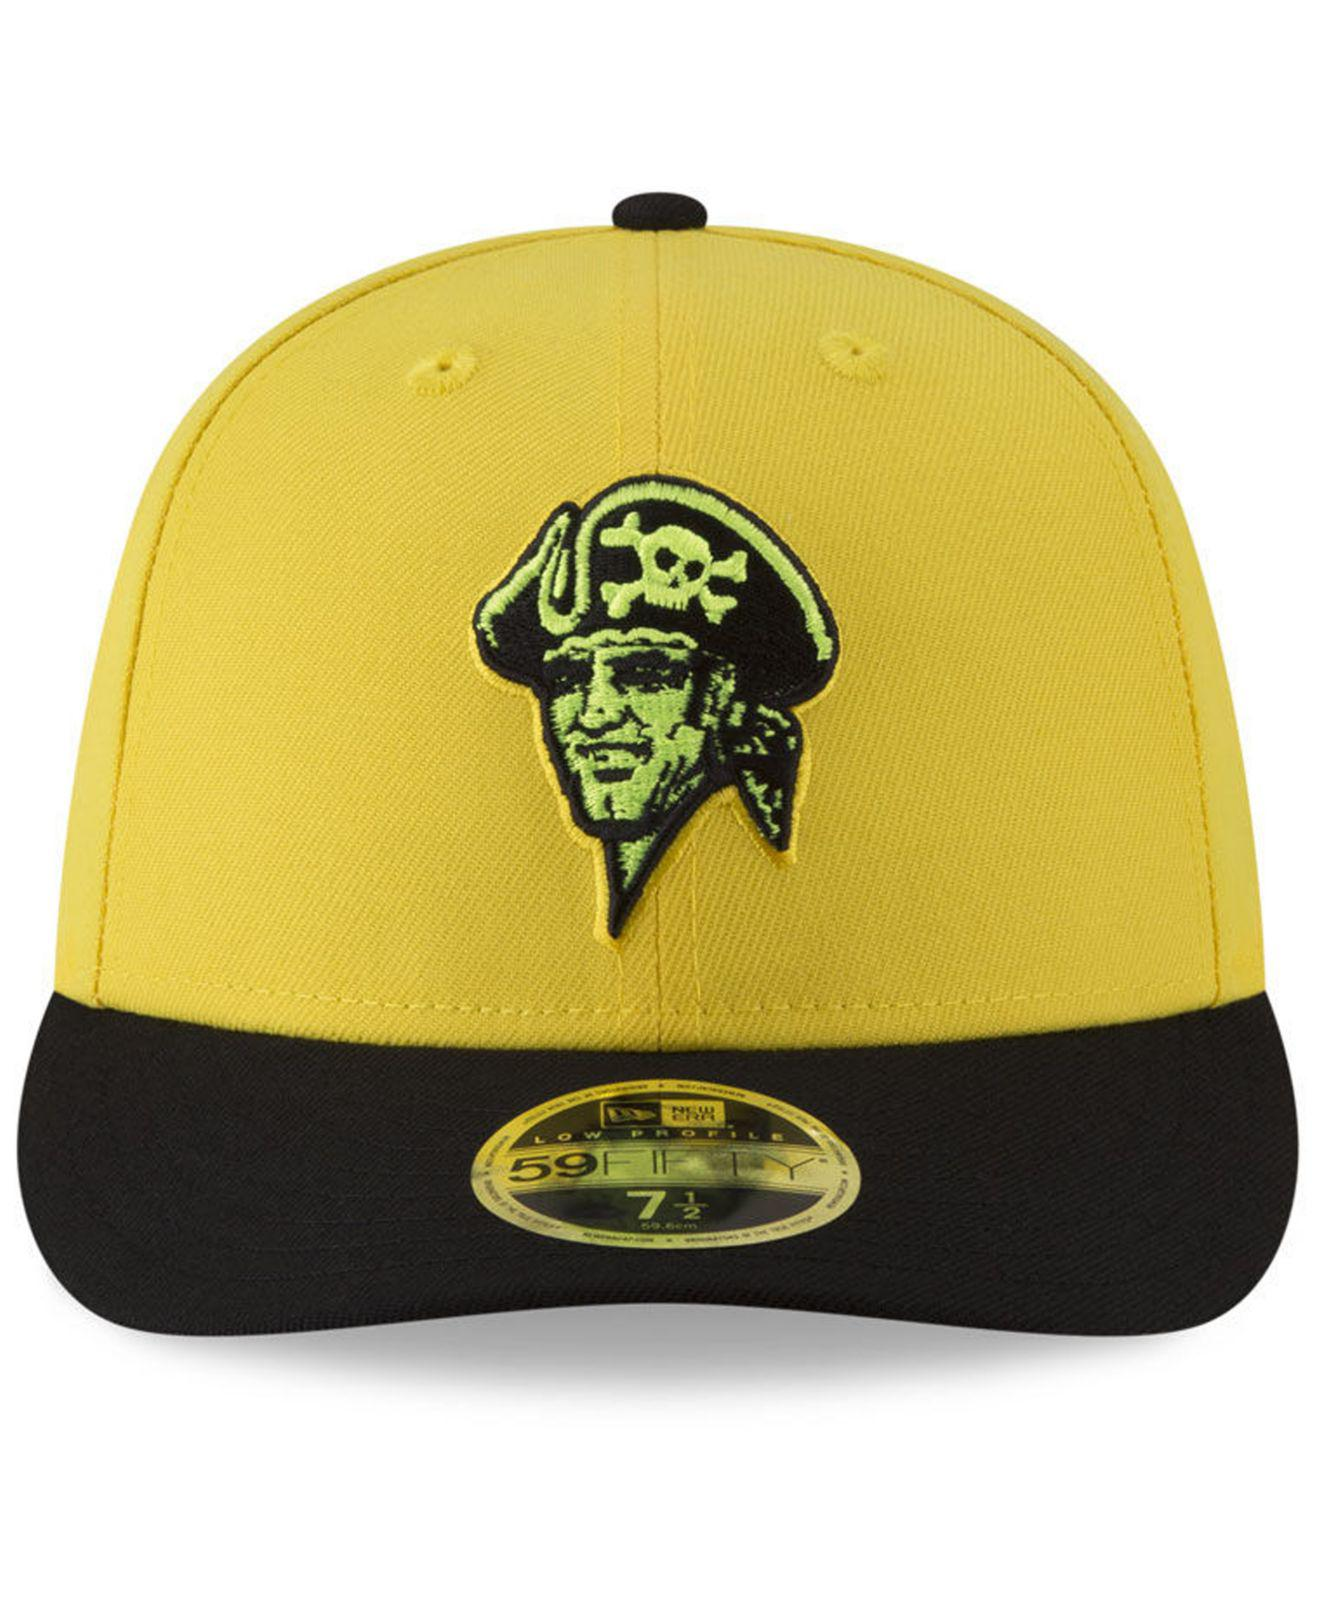 Lyst - Ktz Pittsburgh Pirates Players Weekend Low Profile 59fifty Fitted Cap  in Yellow for Men b3765ab1cefd